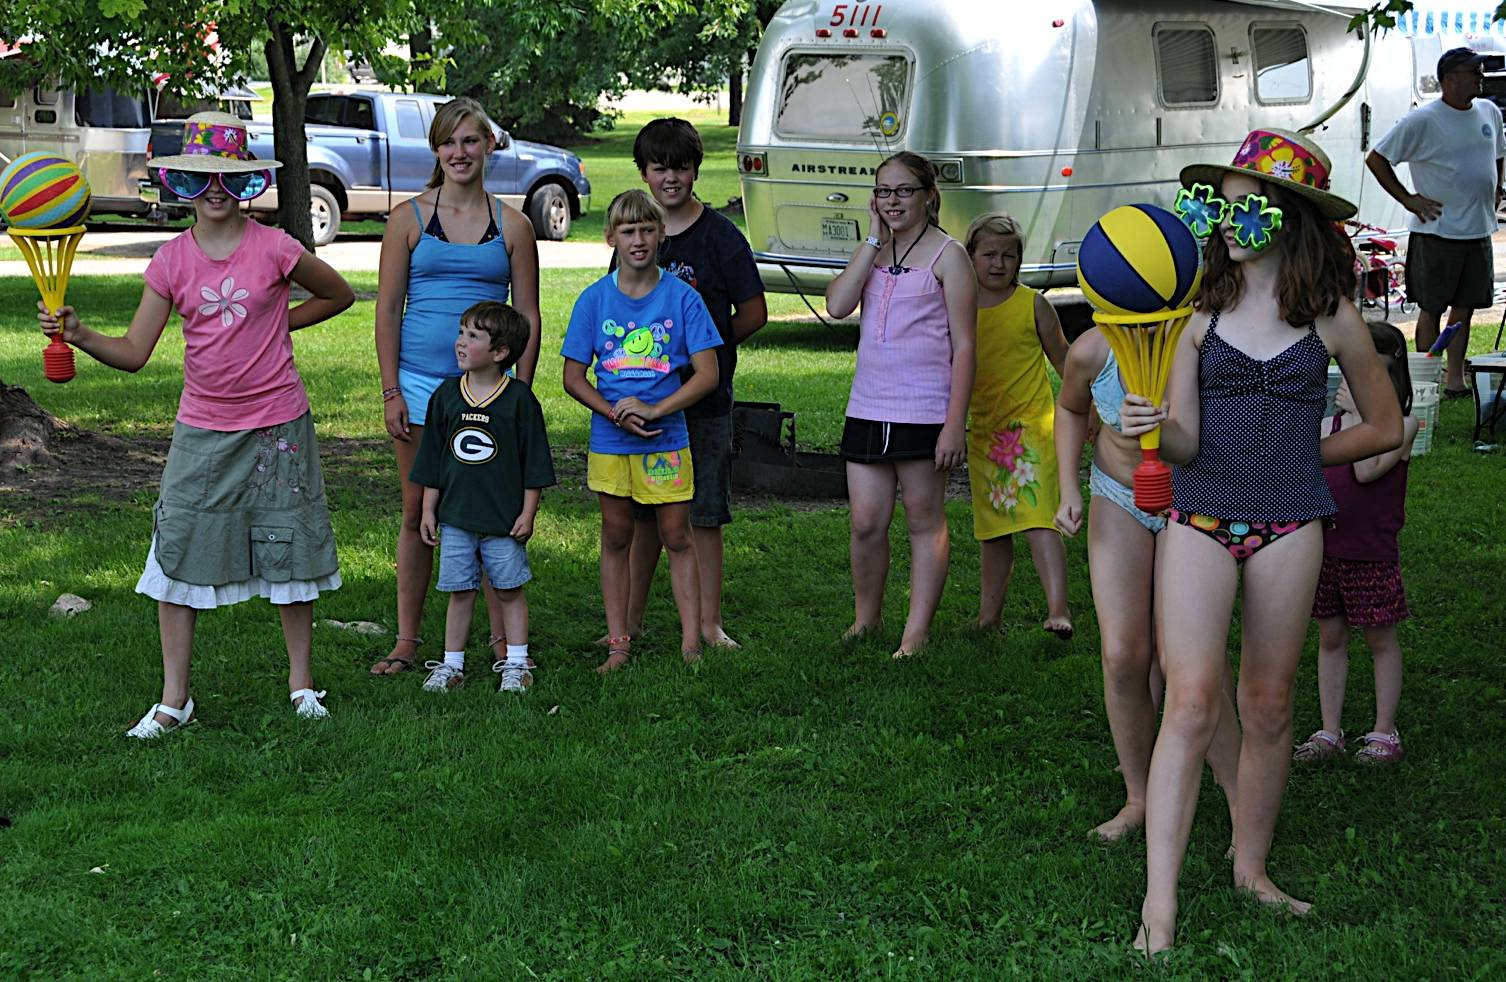 Click image for larger version  Name:Pipe_kids_1.jpg Views:65 Size:285.3 KB ID:87720